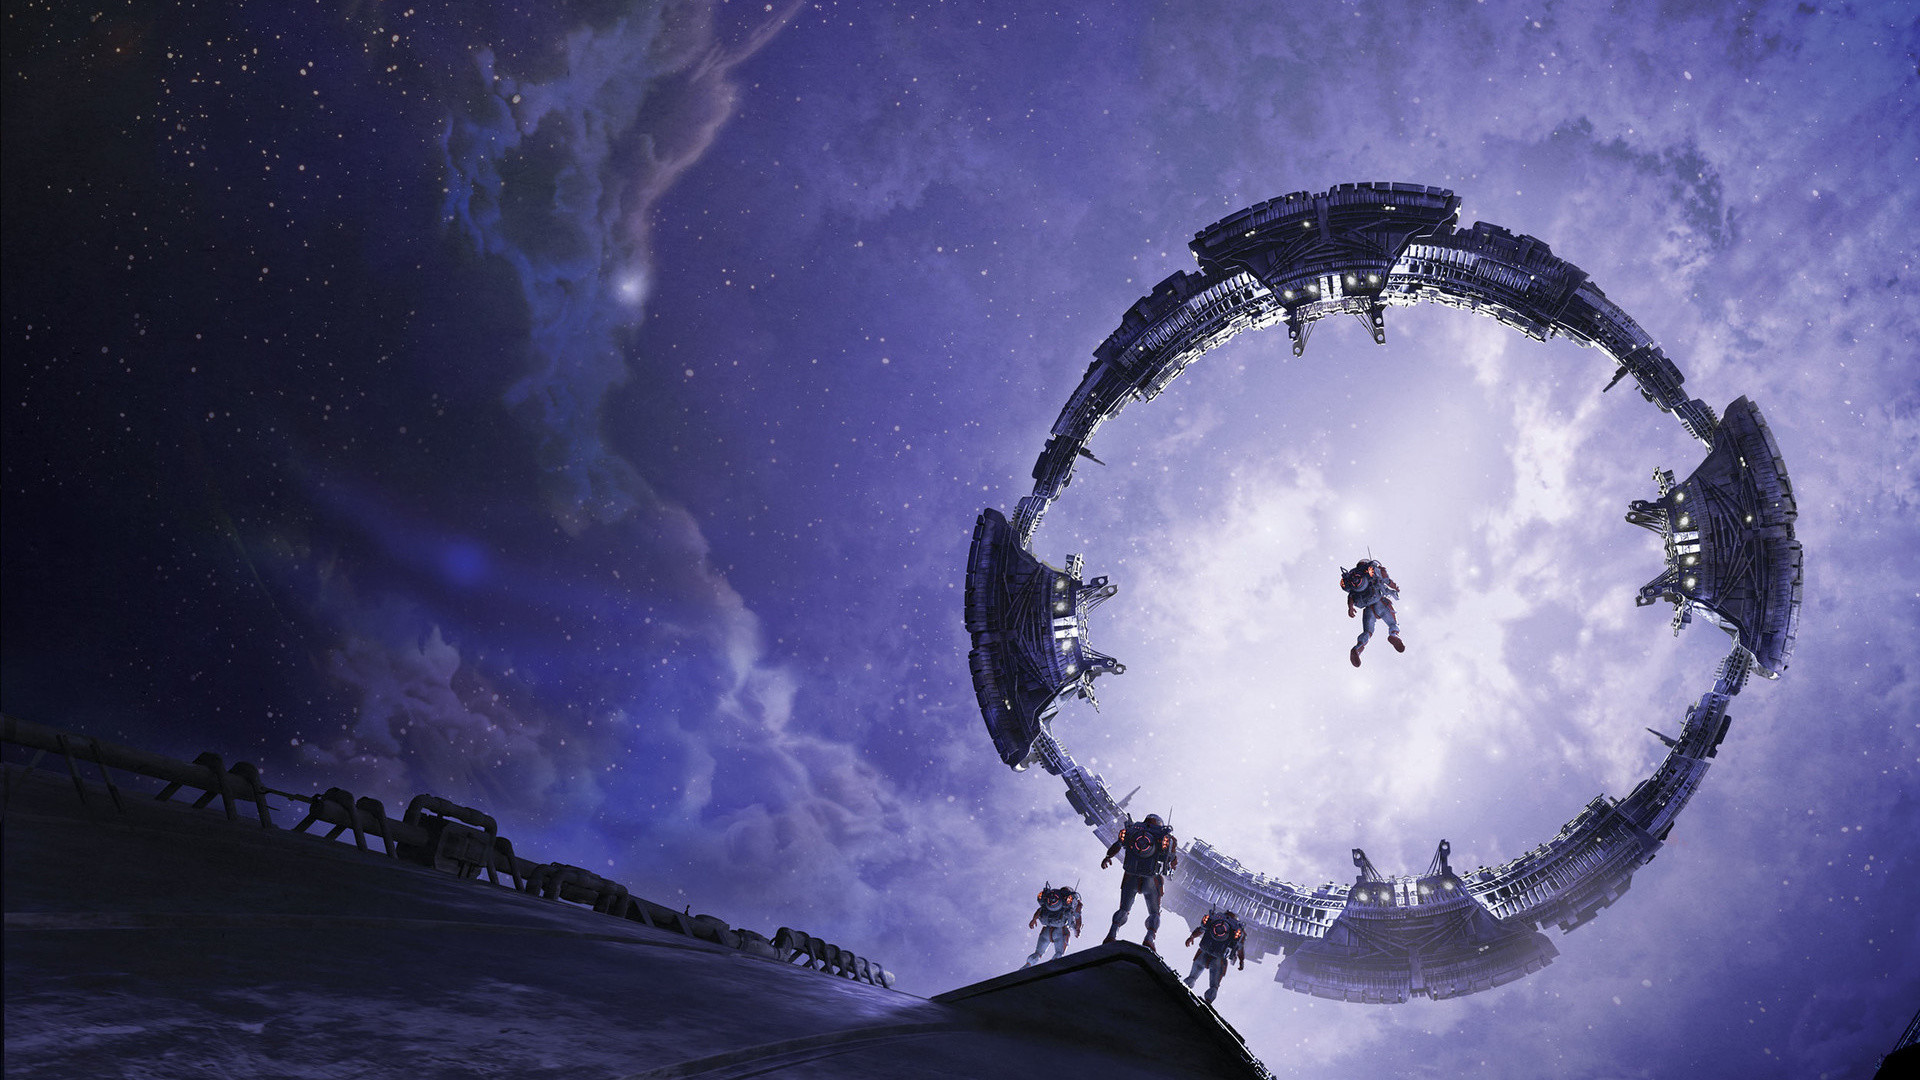 Res: 1920x1080,  wallpaper Space station, astronaut, space, fantasy, art